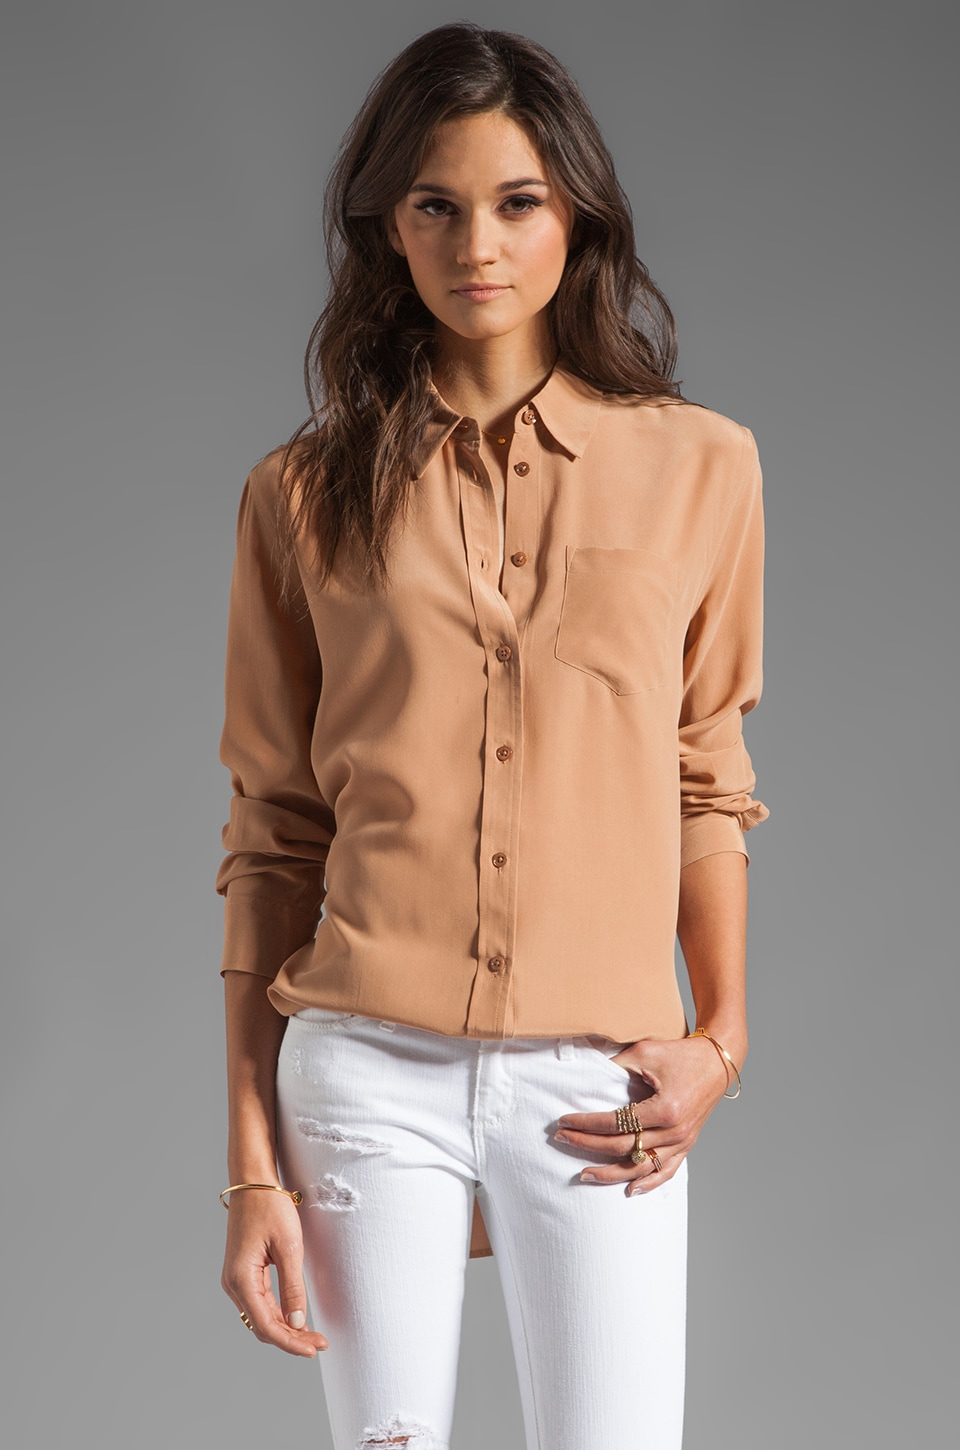 Equipment Reese Blouse in Caramel